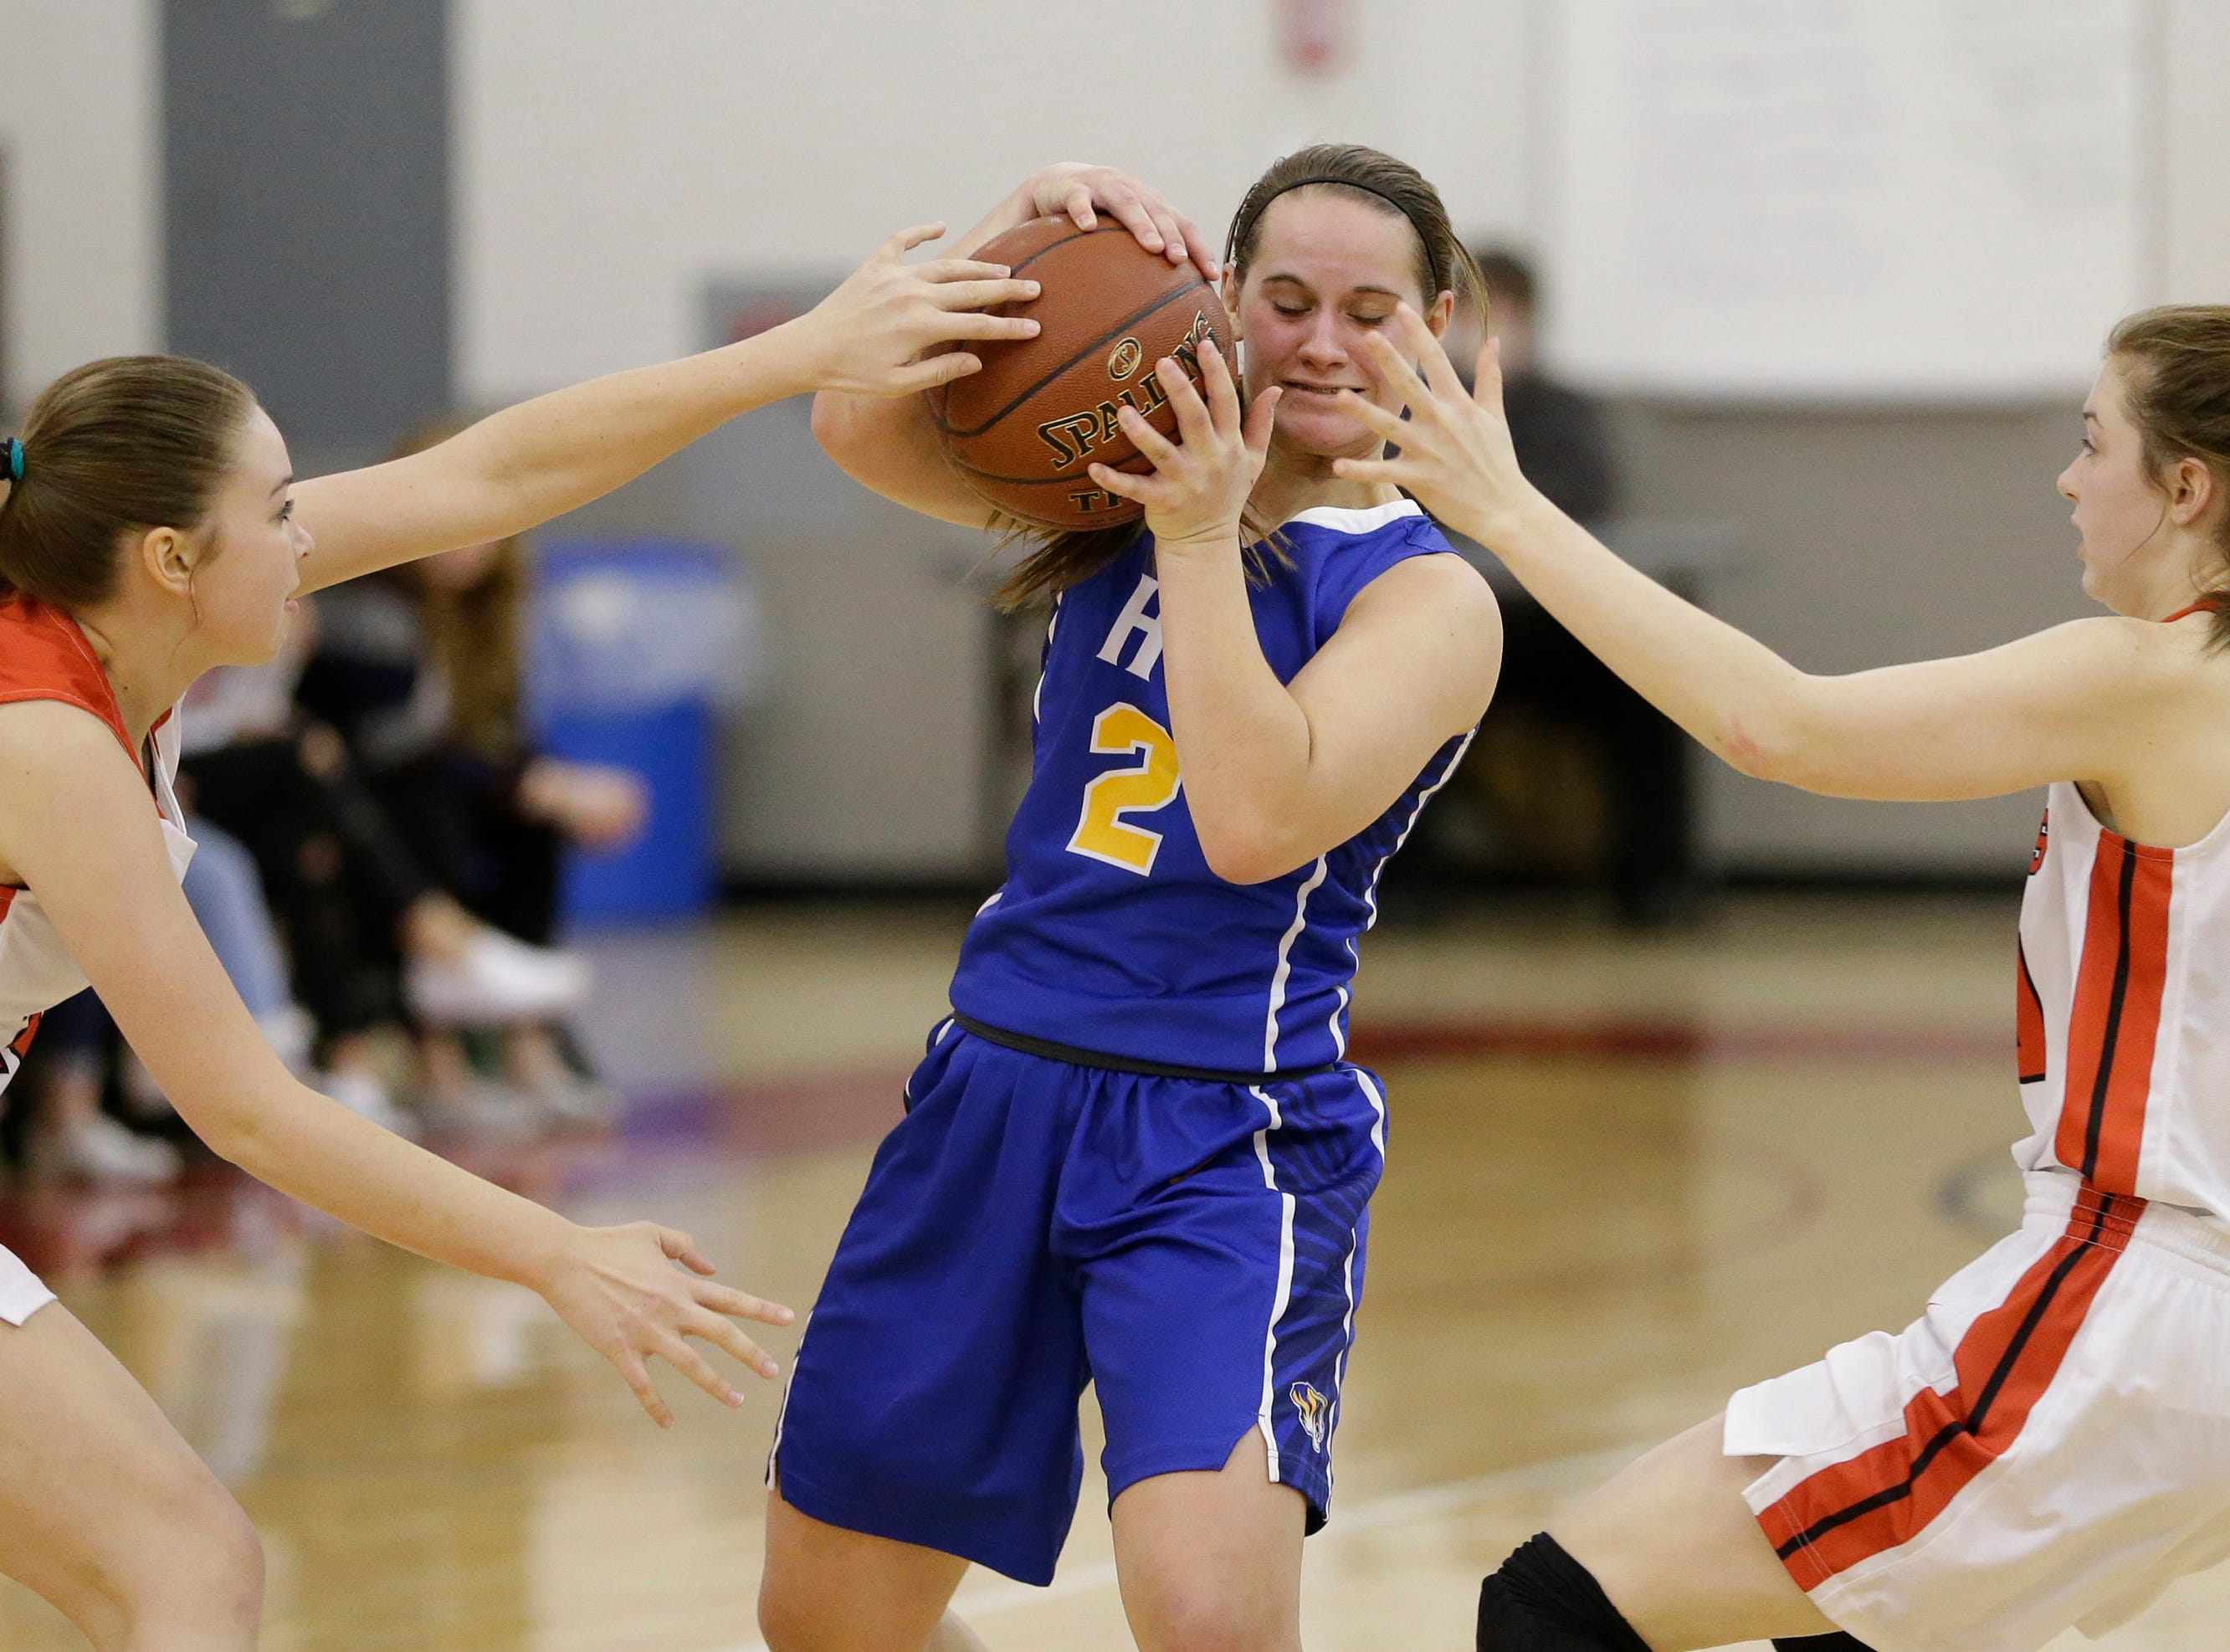 Howards Grove's Zayla Mueller hangs onto the ball as she gets pressure from Valders during a non-conference game at Valders High School Saturday, January 19, 2019, in Valders, Wis. Joshua Clark/USA TODAY NETWORK-Wisconsin